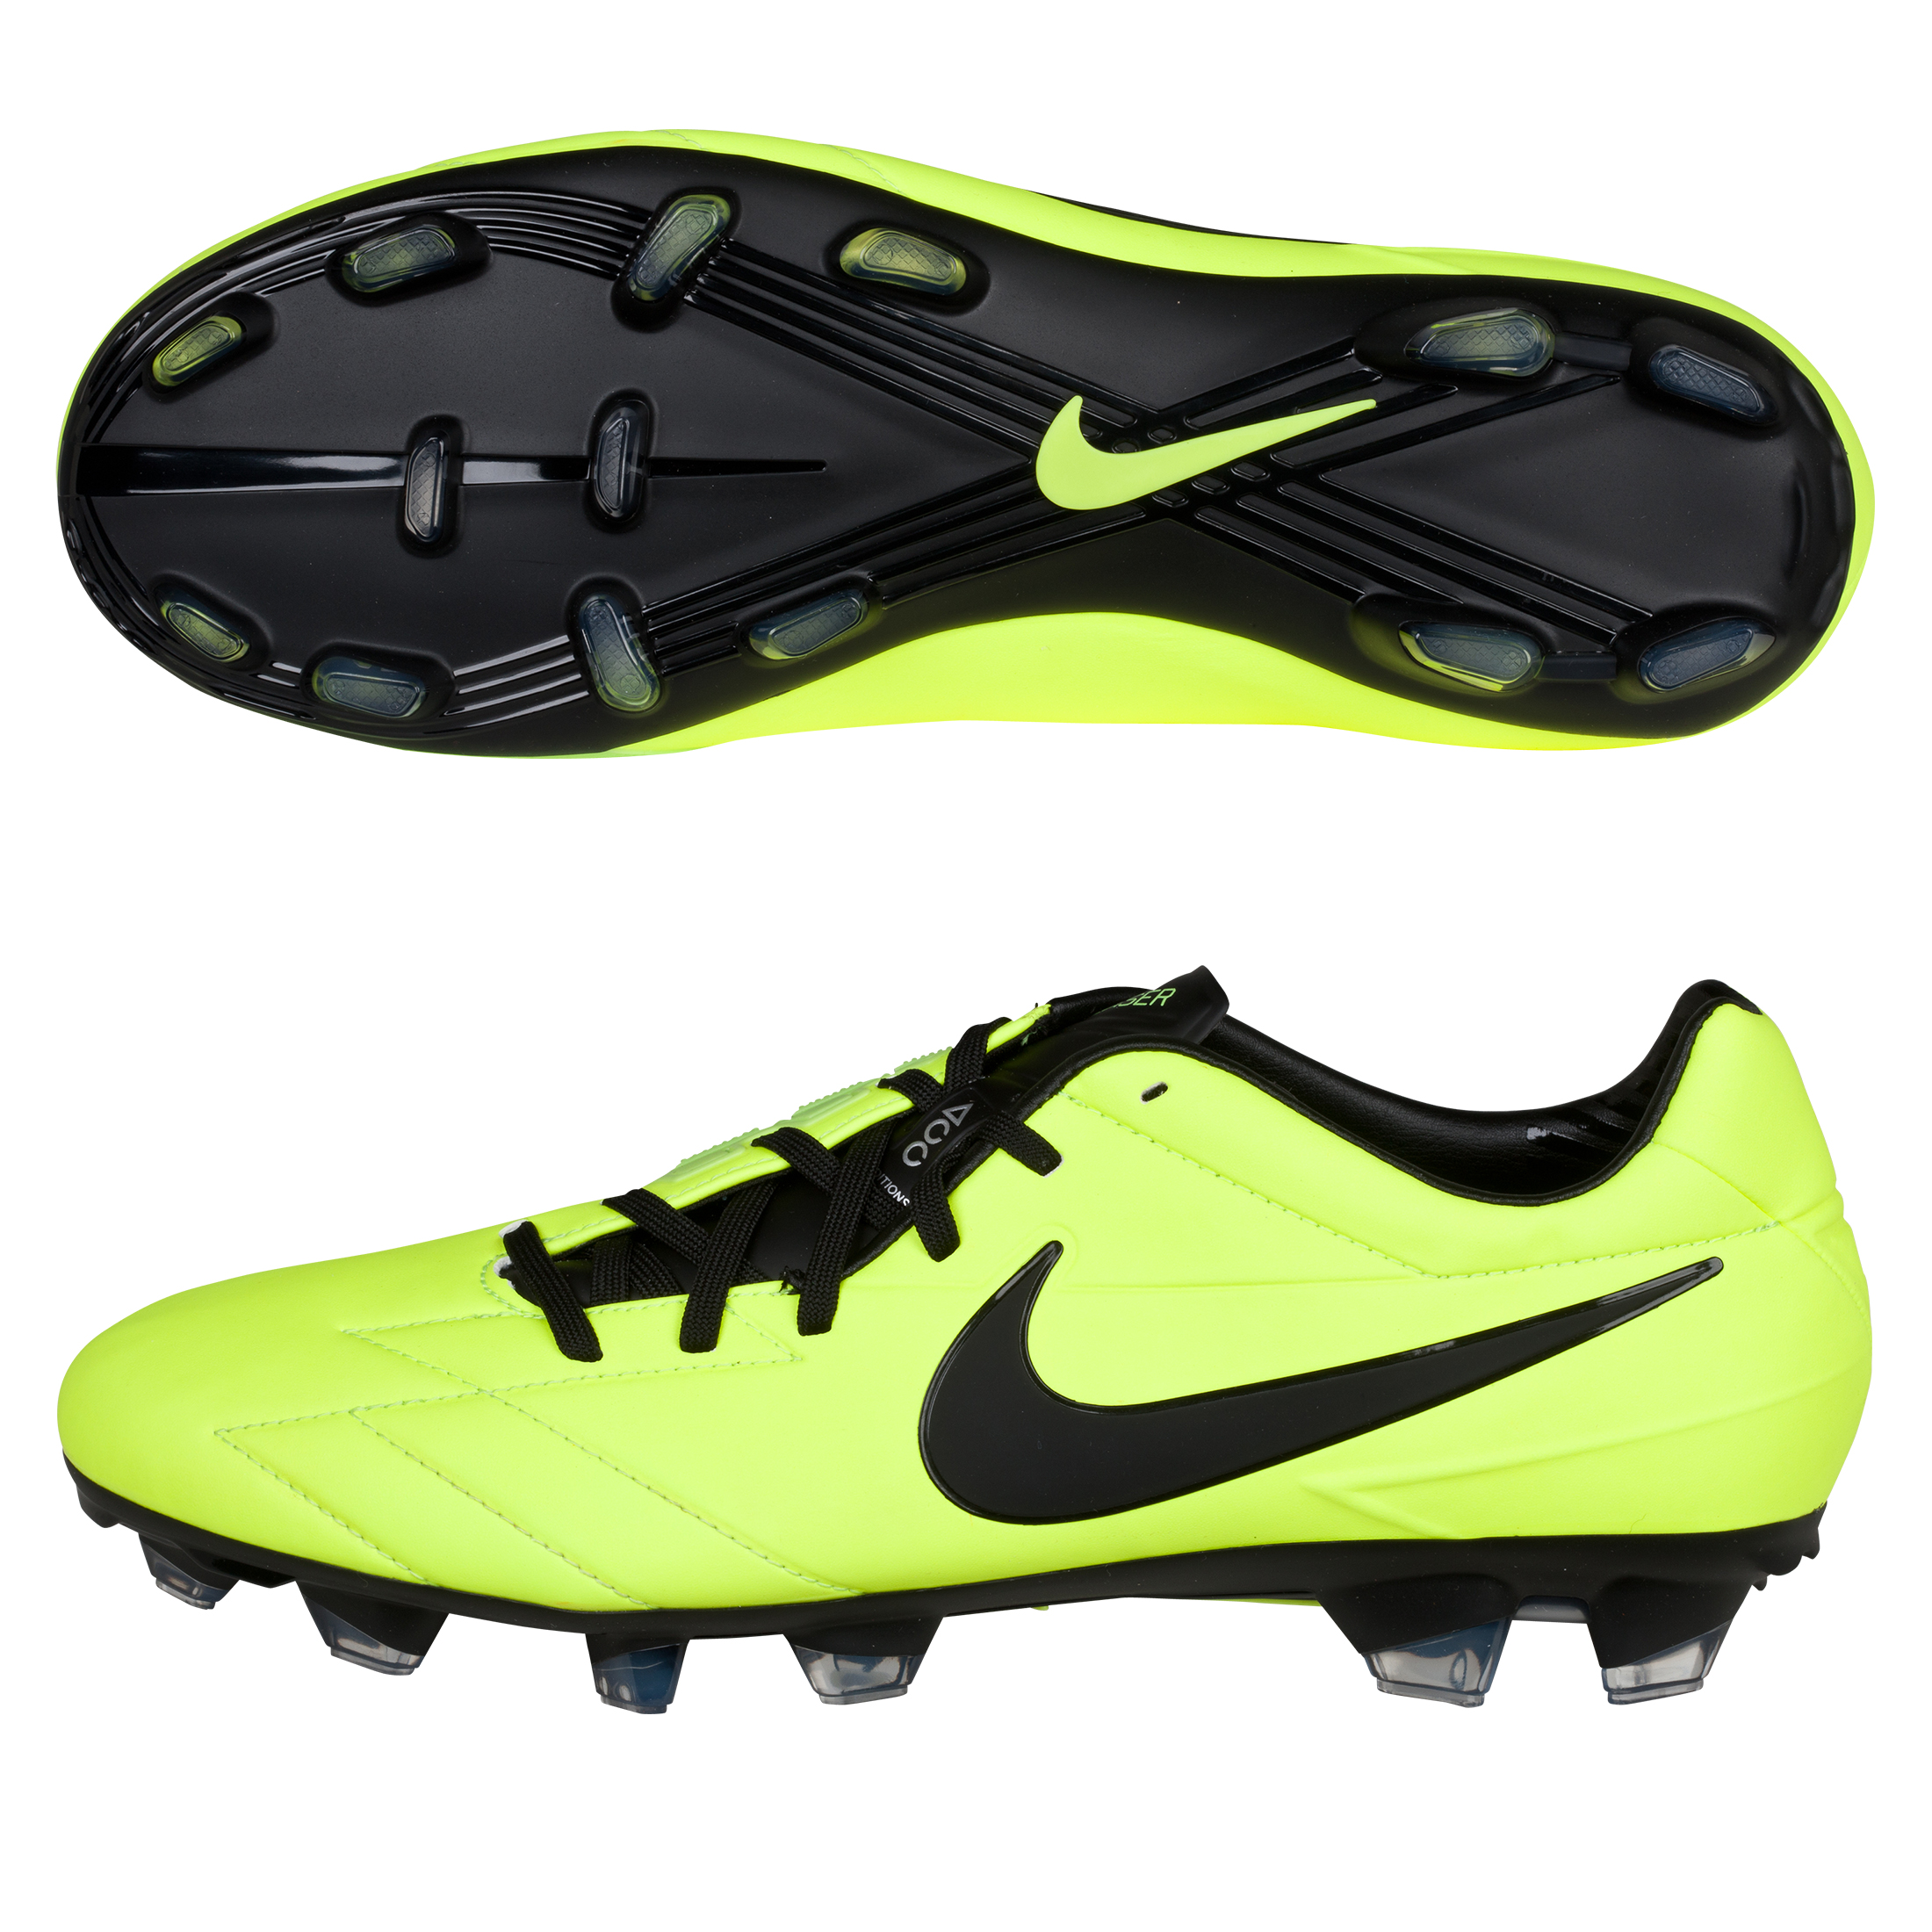 Nike Total90 Laser IV Firm Ground Football Boots - Volt/Black/Citron